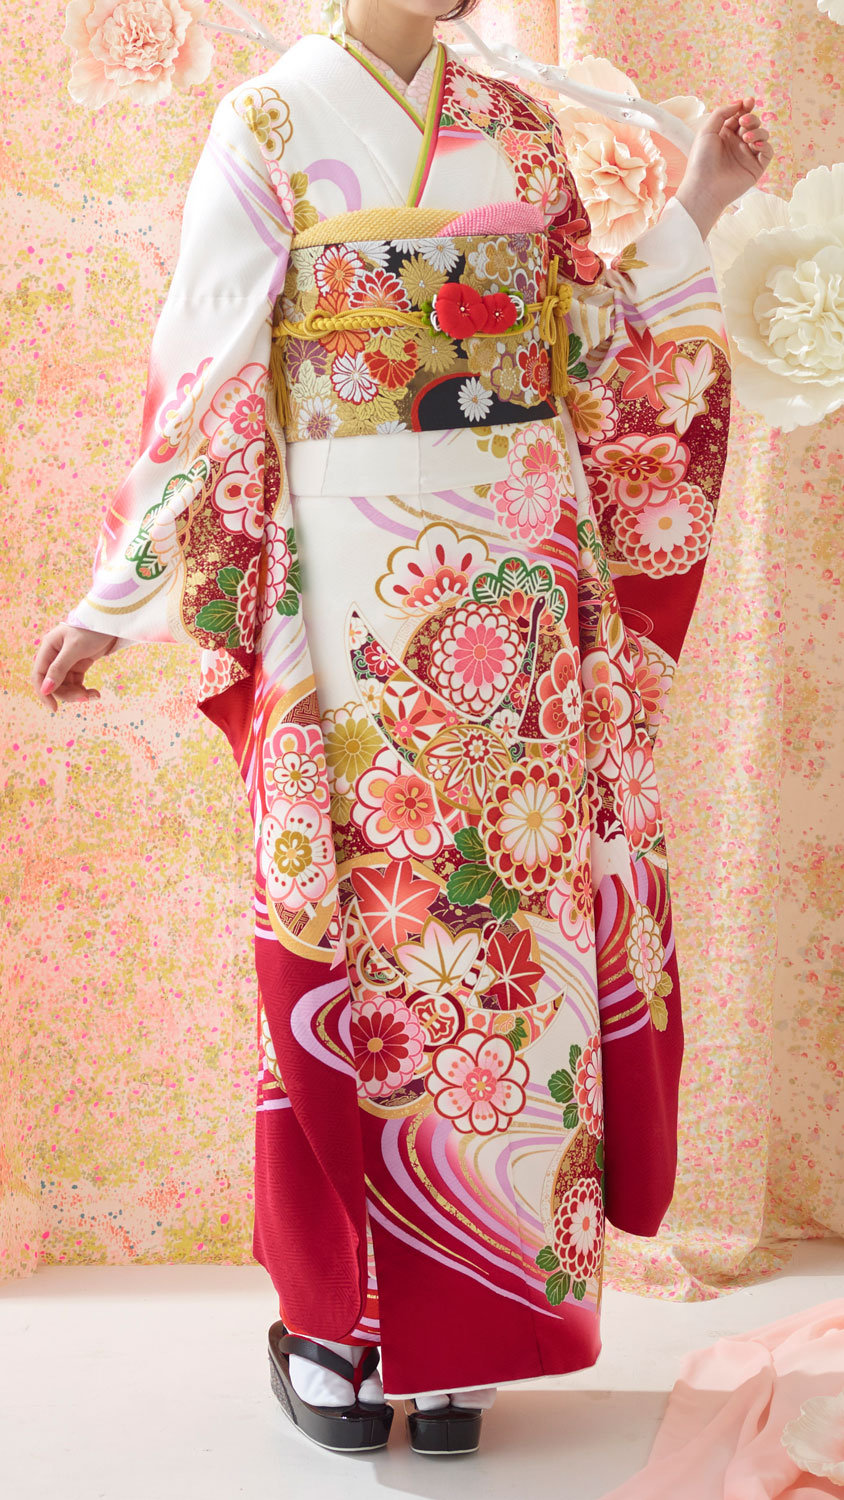 index_furisode_g012.jpg